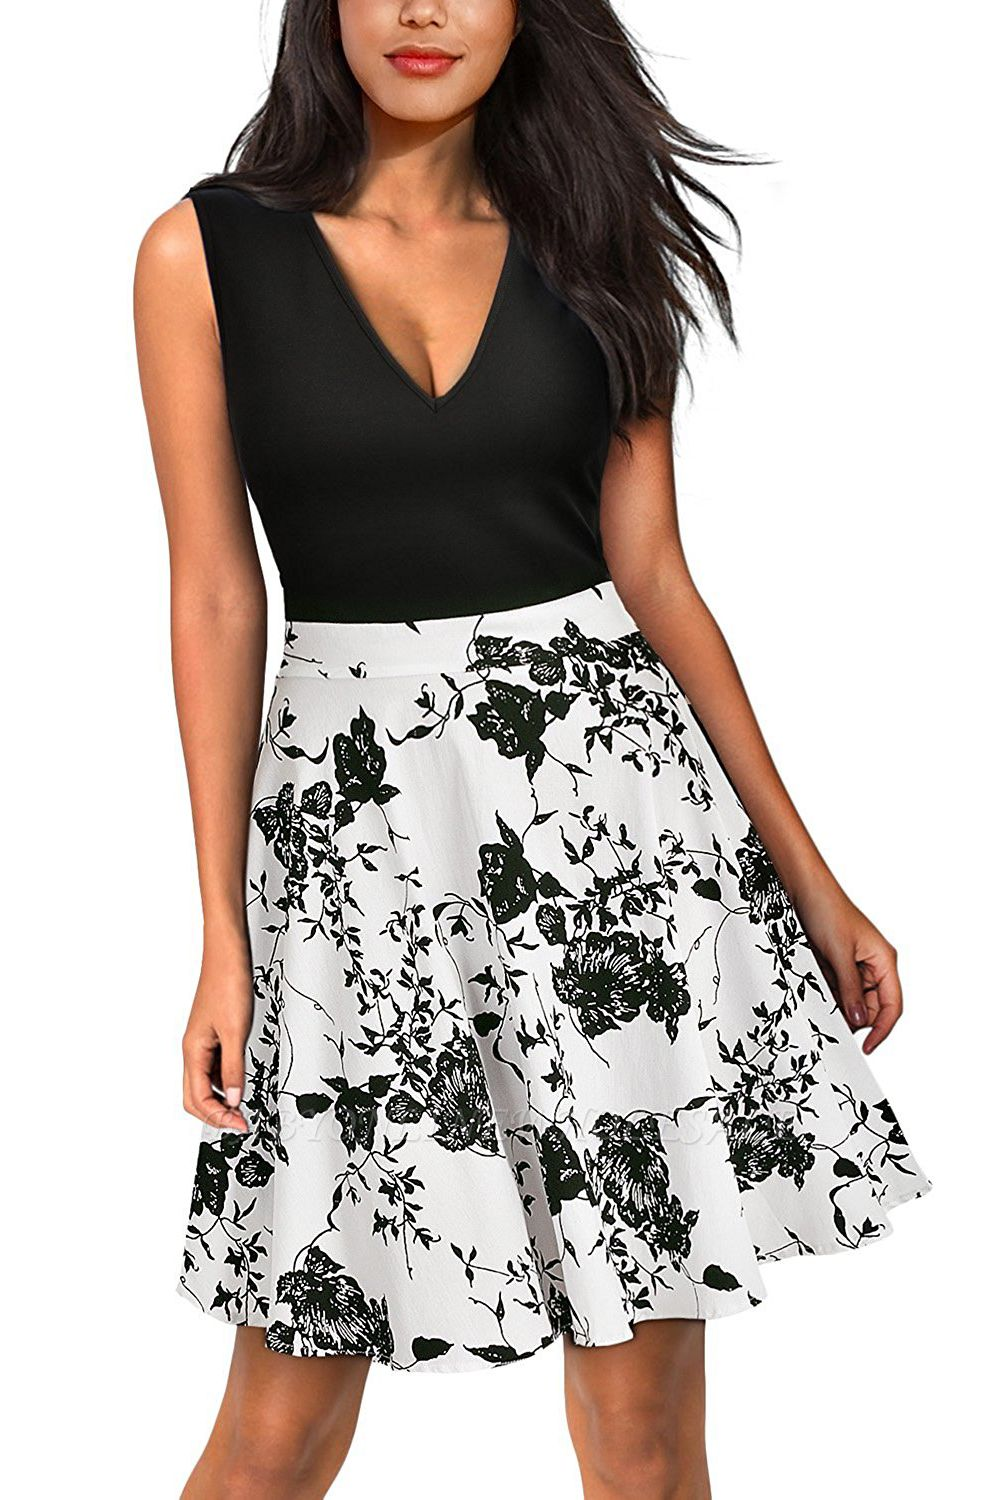 Sleeveless Sexy V-neck A-line Dress with Floral Skirt | Clearance Sale & Free Shipping